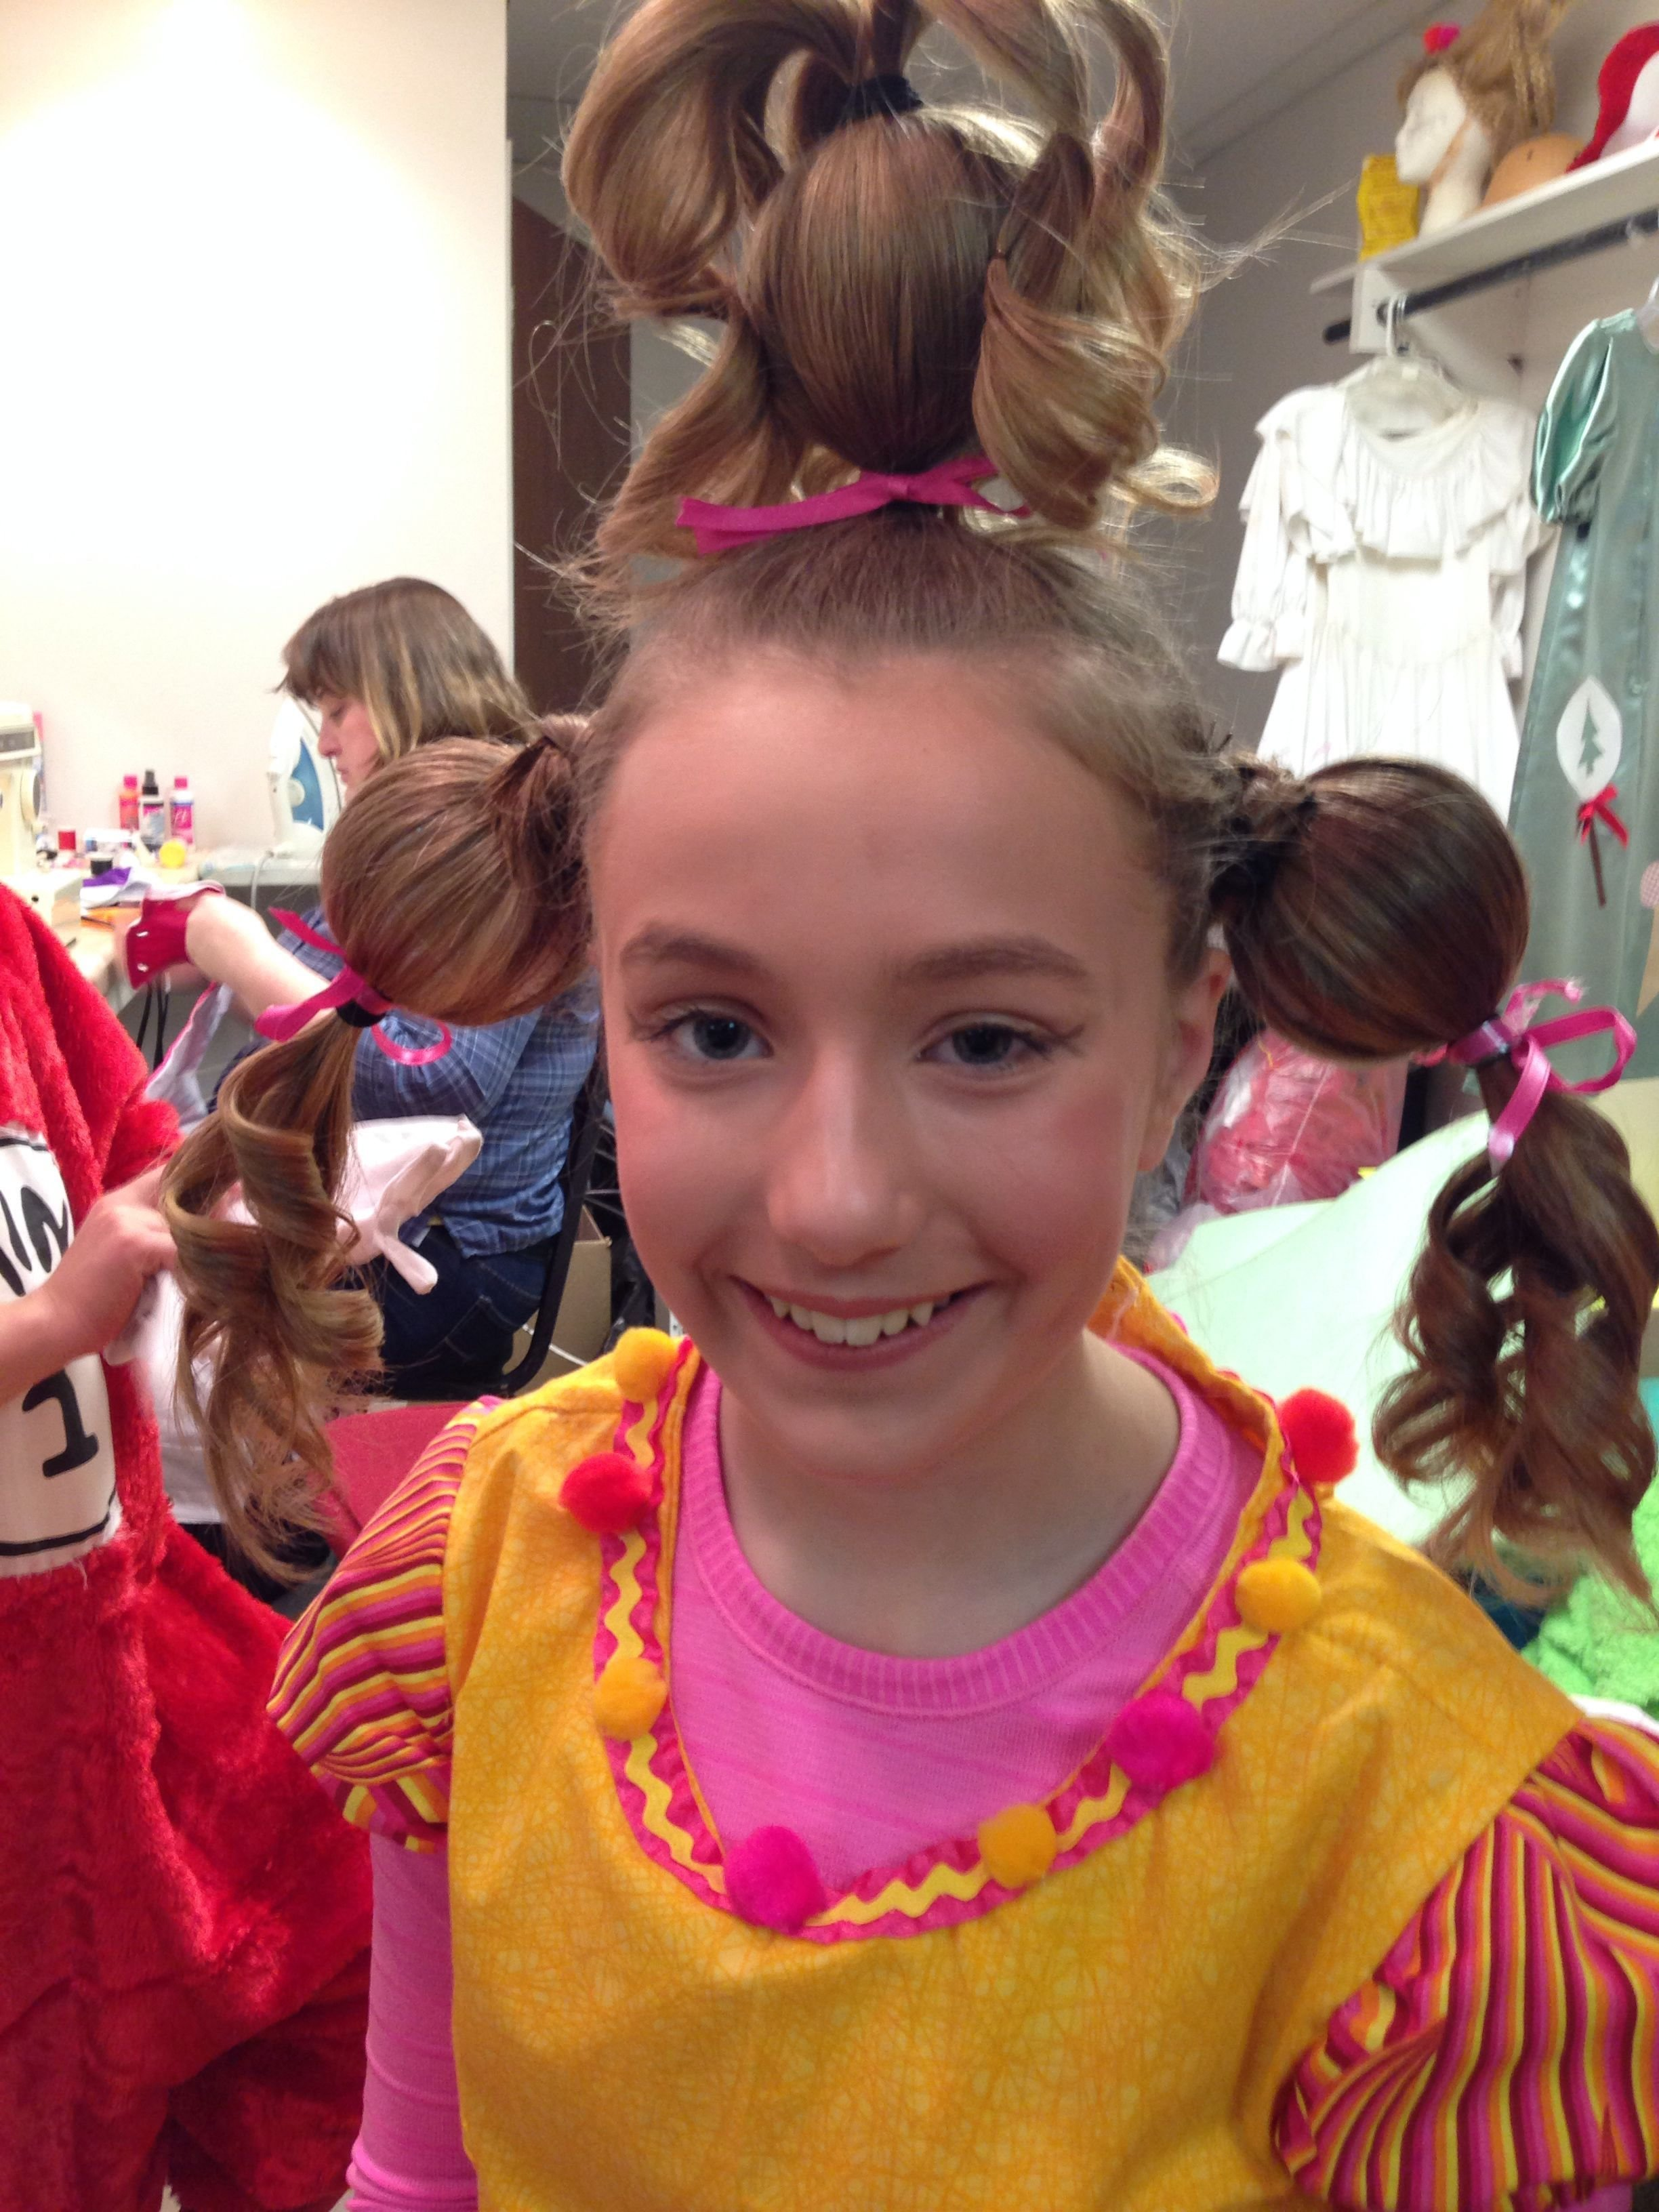 The Best Cindy Lou Hoo Hairstyle Whoville Hair T Hair Studio Pictures